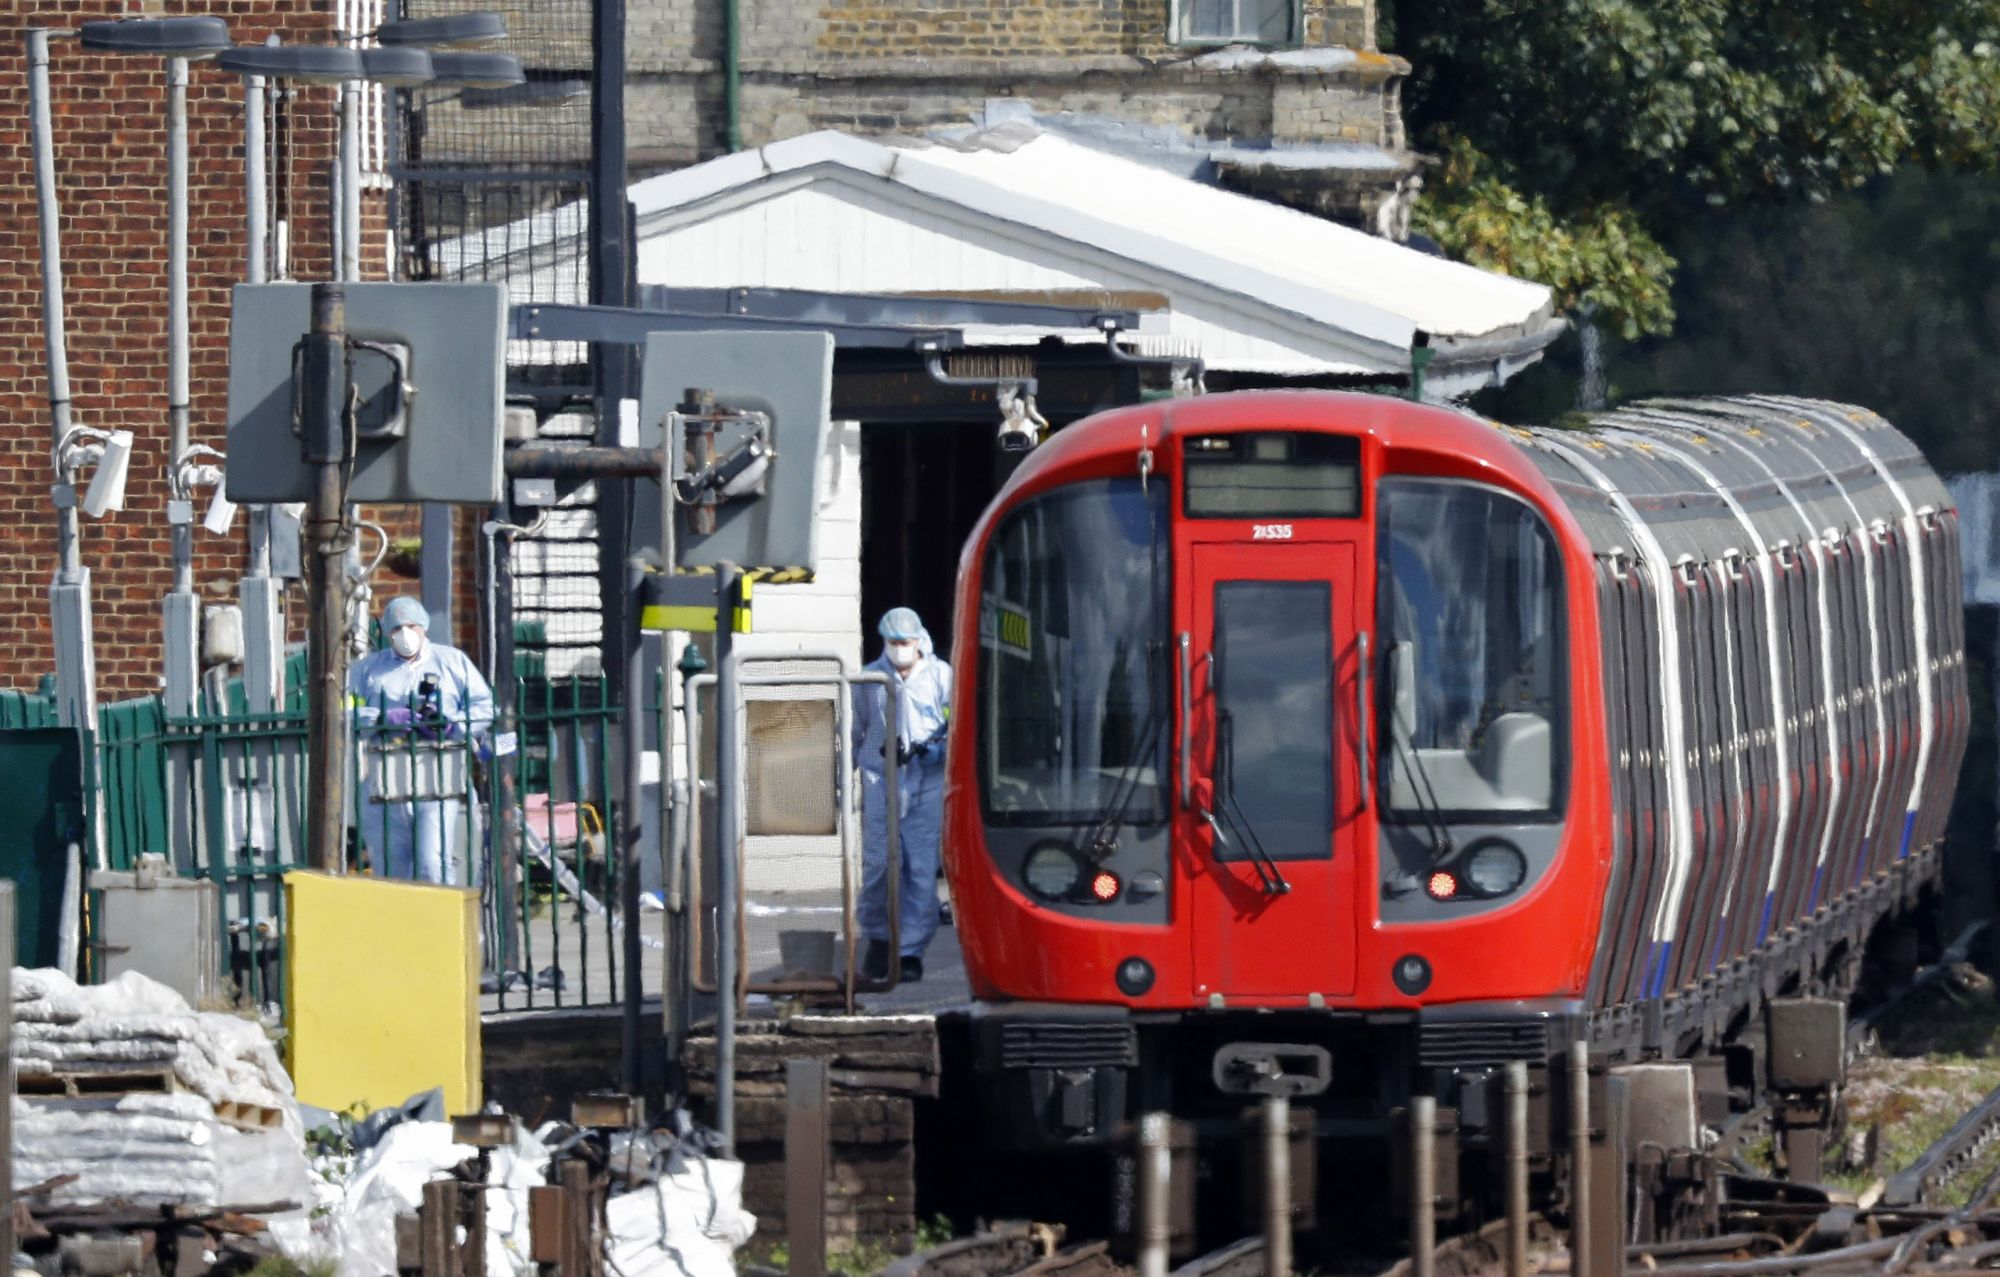 Police forensics officers examine a subway train car at Parsons Green Station in southwest London on Friday following a bomb blast on a packed train. | AFP-JIJI